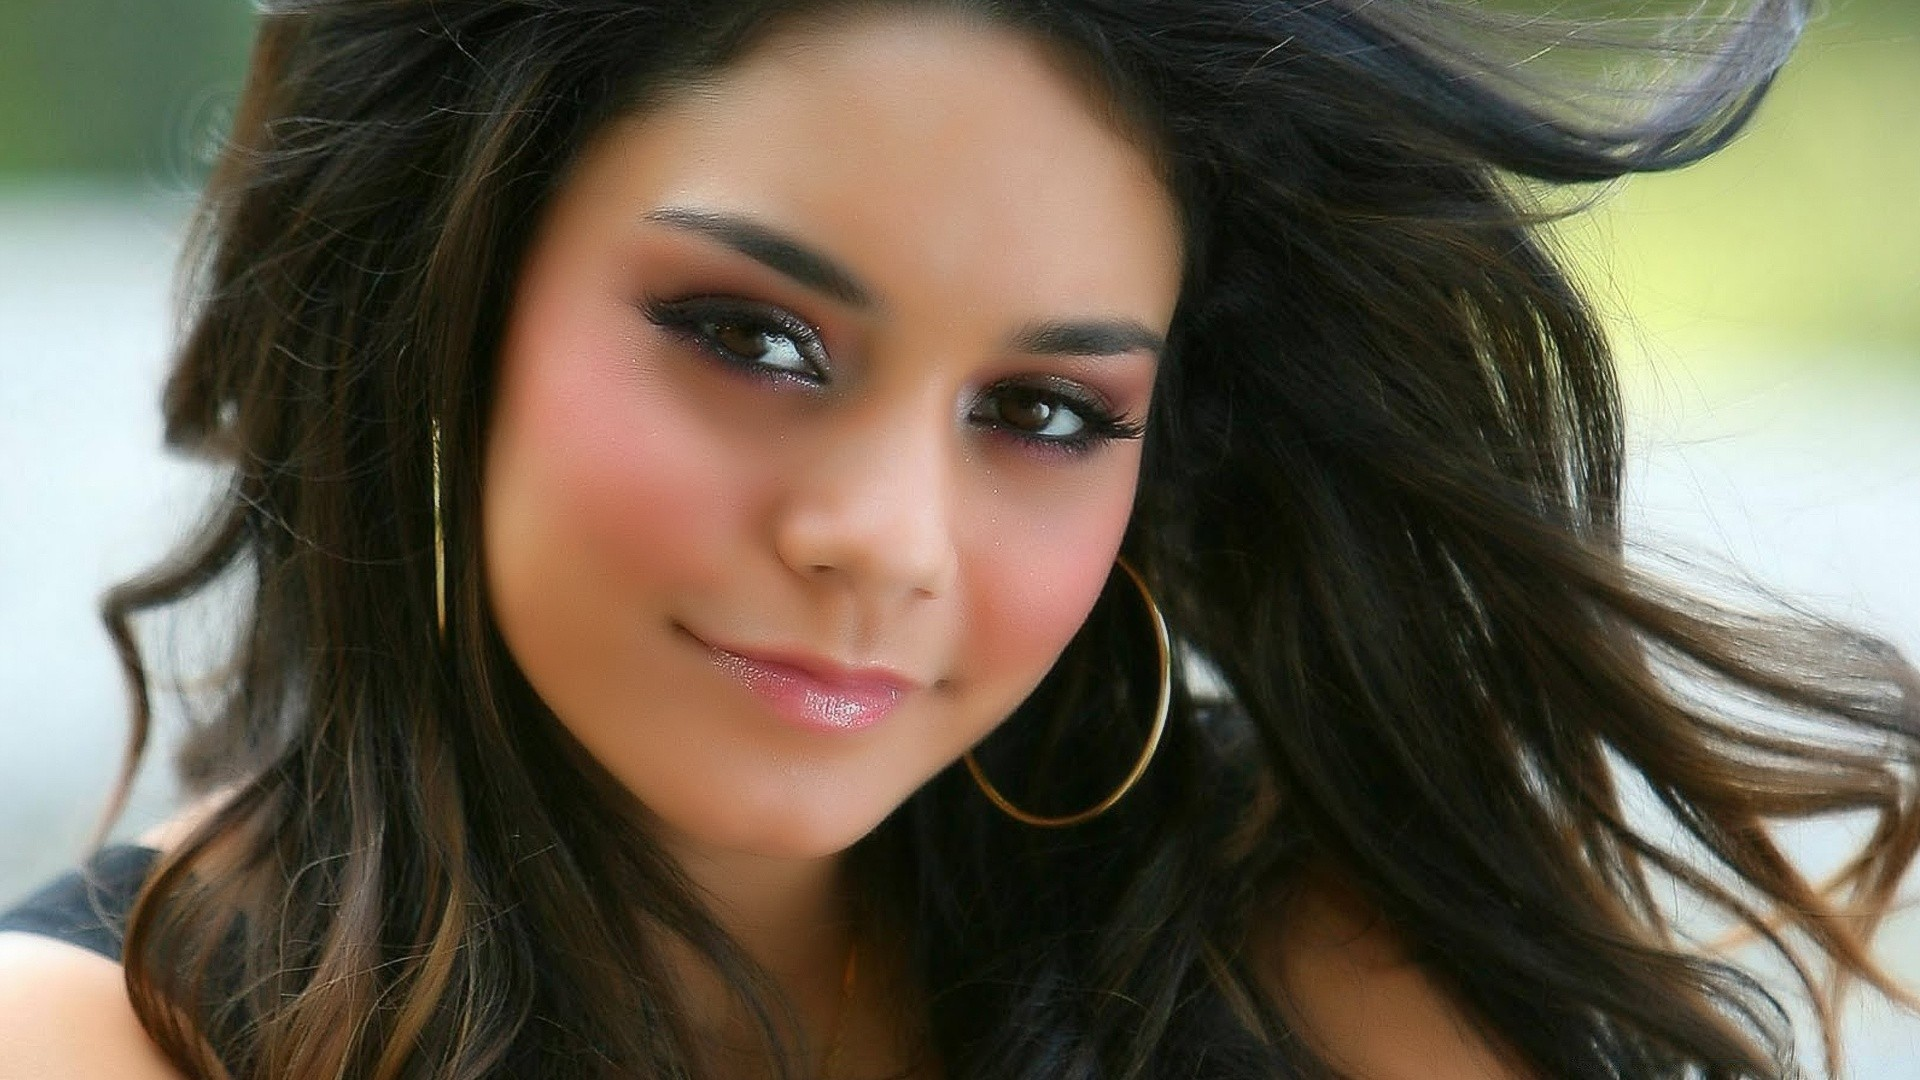 belle mina big and beautiful singles Search for local big and beautiful singles search pictures and profiles of big and beautiful singles near you right now discover how online dating sites make finding singles in the united states, canada, and all over the world simple, safe and fun.